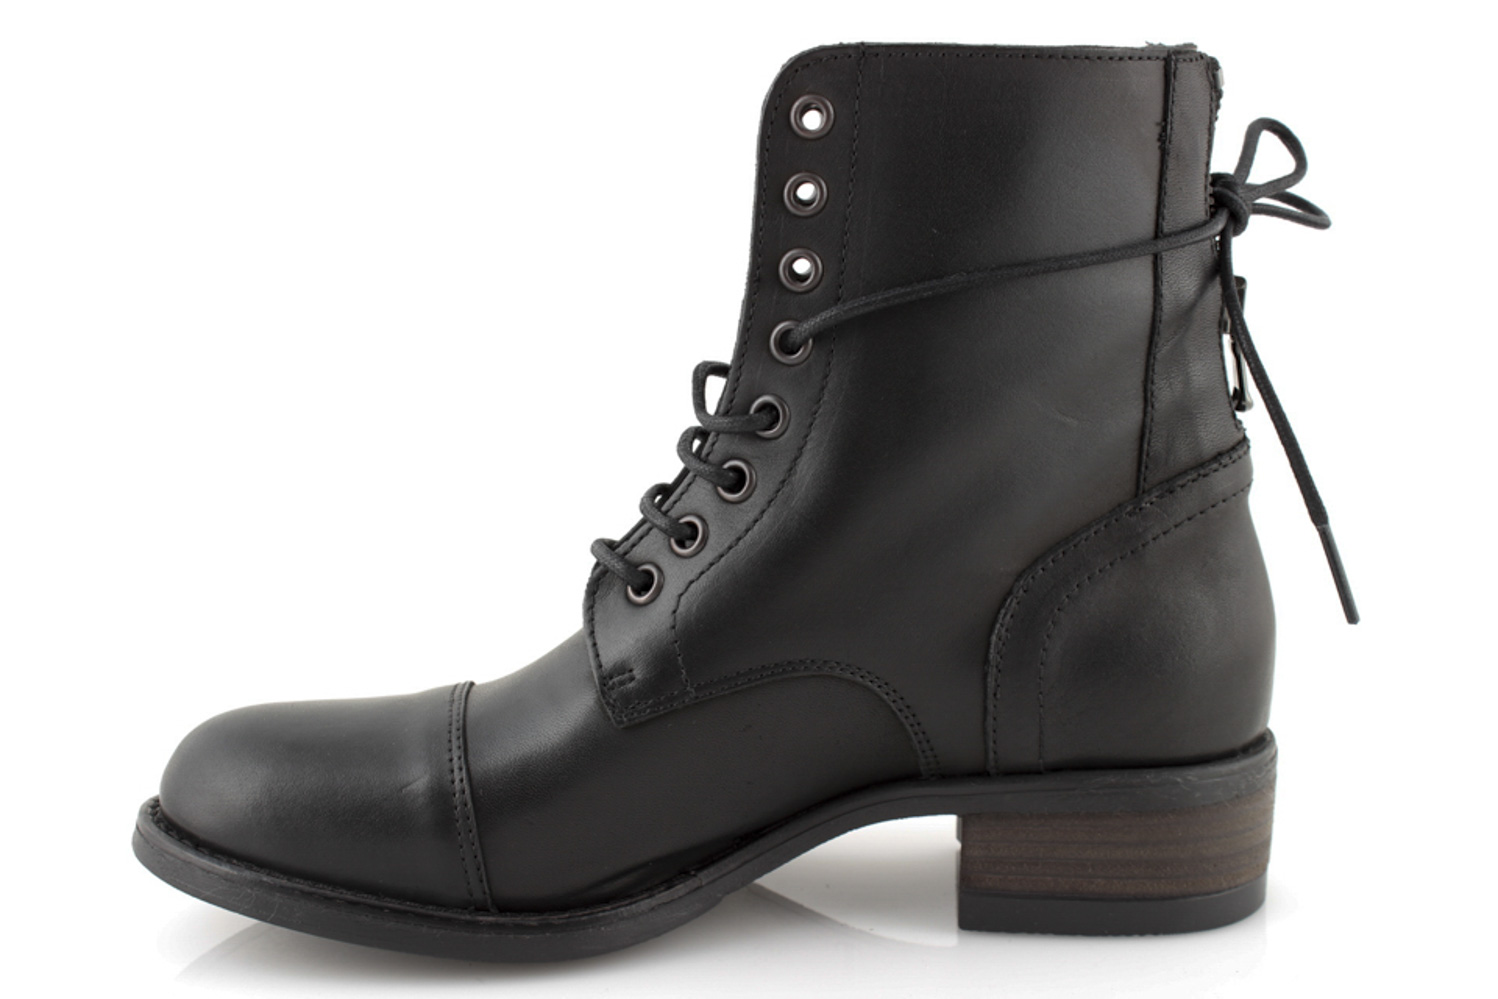 Chaussures Militaire Bottes Hiver Italy Noir In Made Femme Rangers Cuir qXwEtn